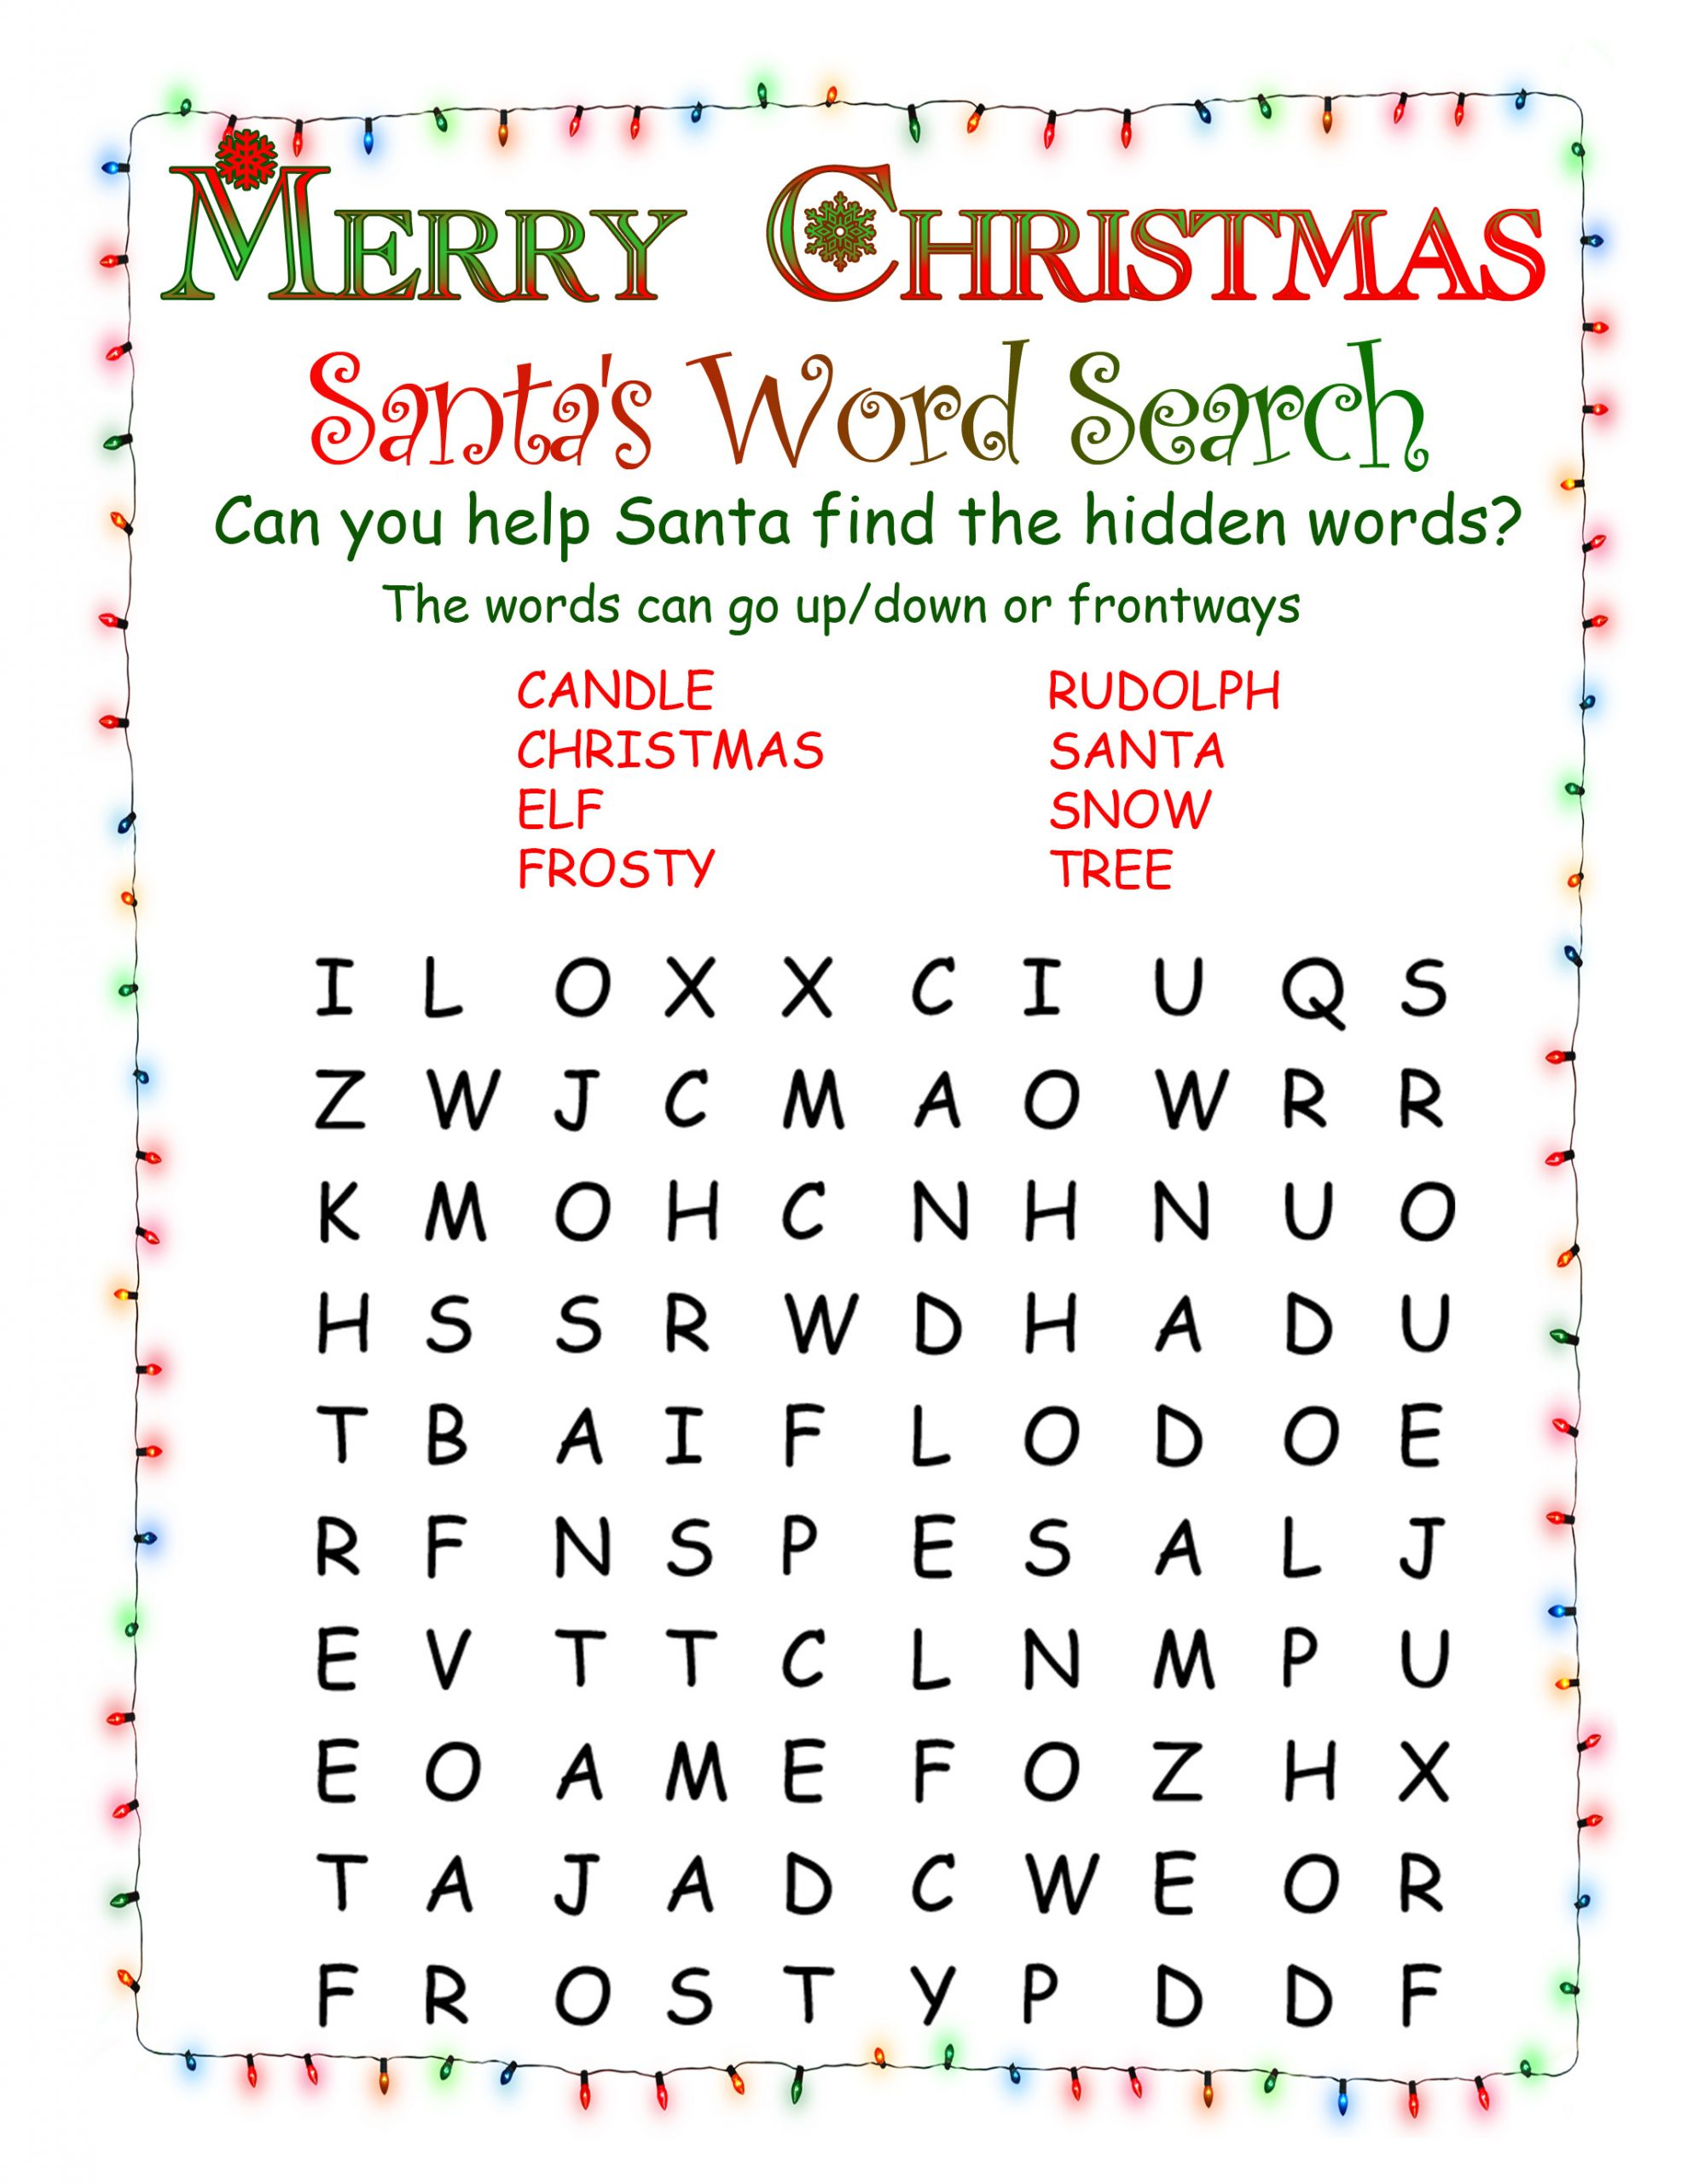 Printable Word Searches | North Pole News